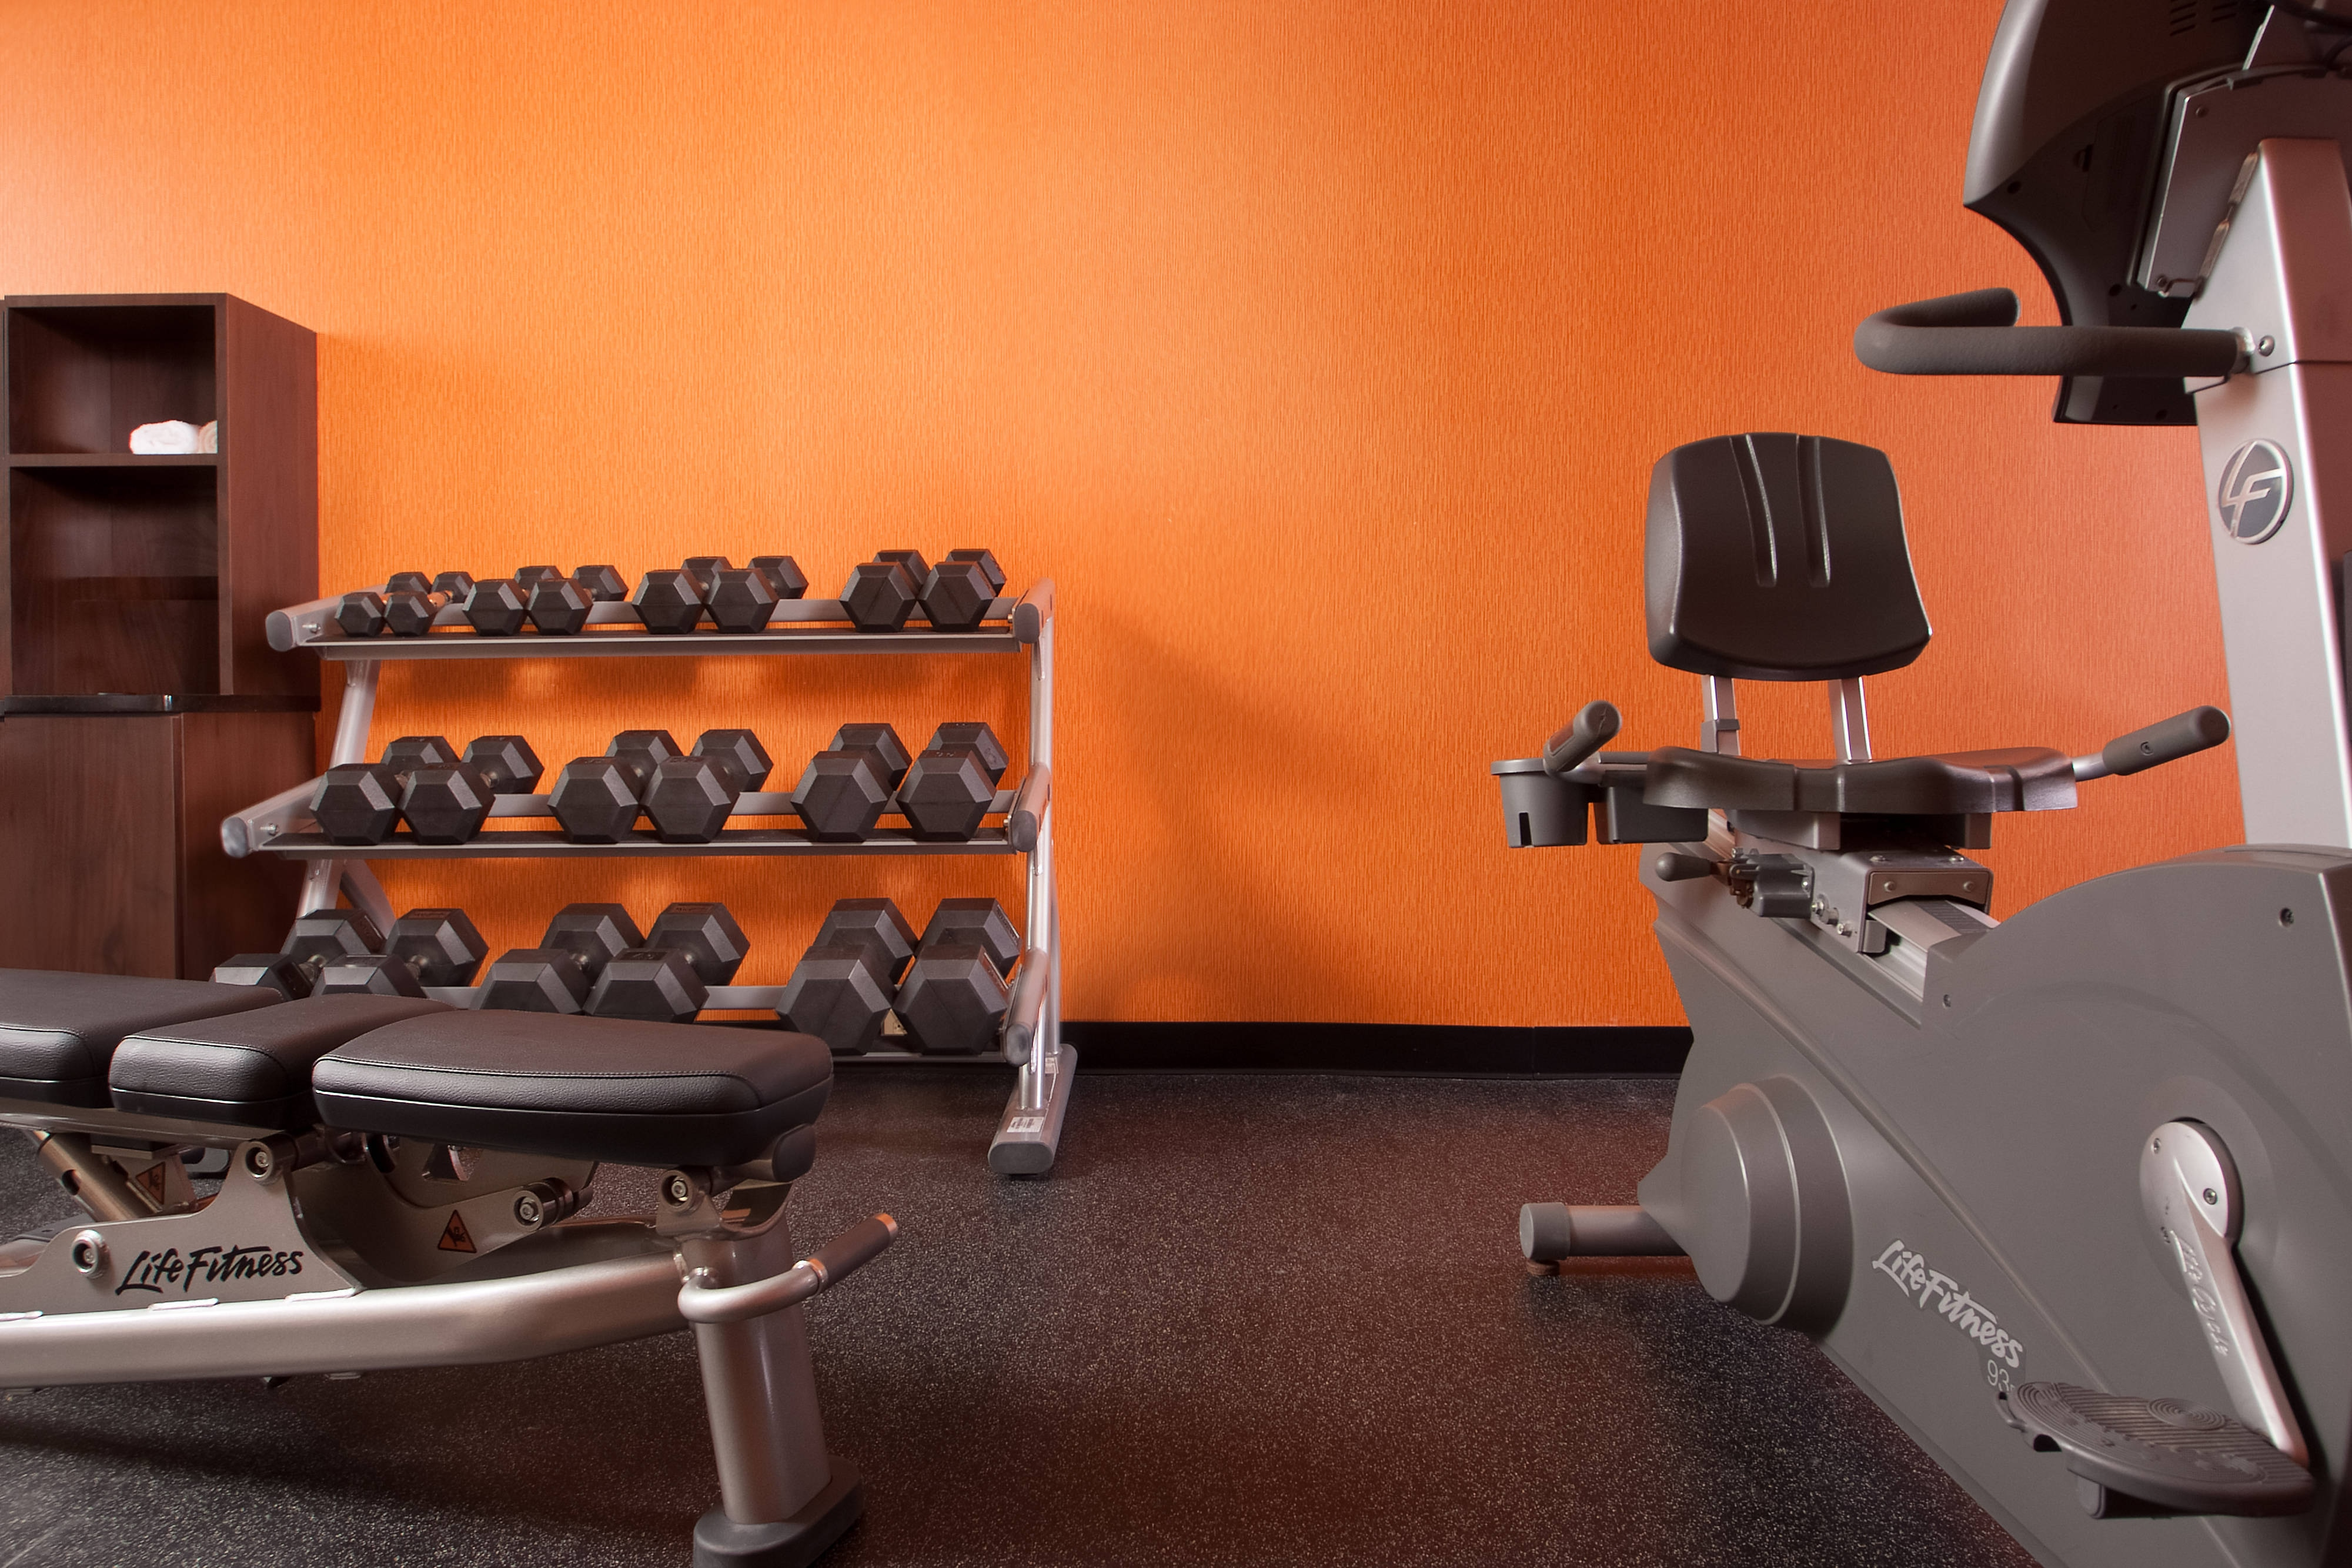 Hotels in Gastonia NC with a fitness center